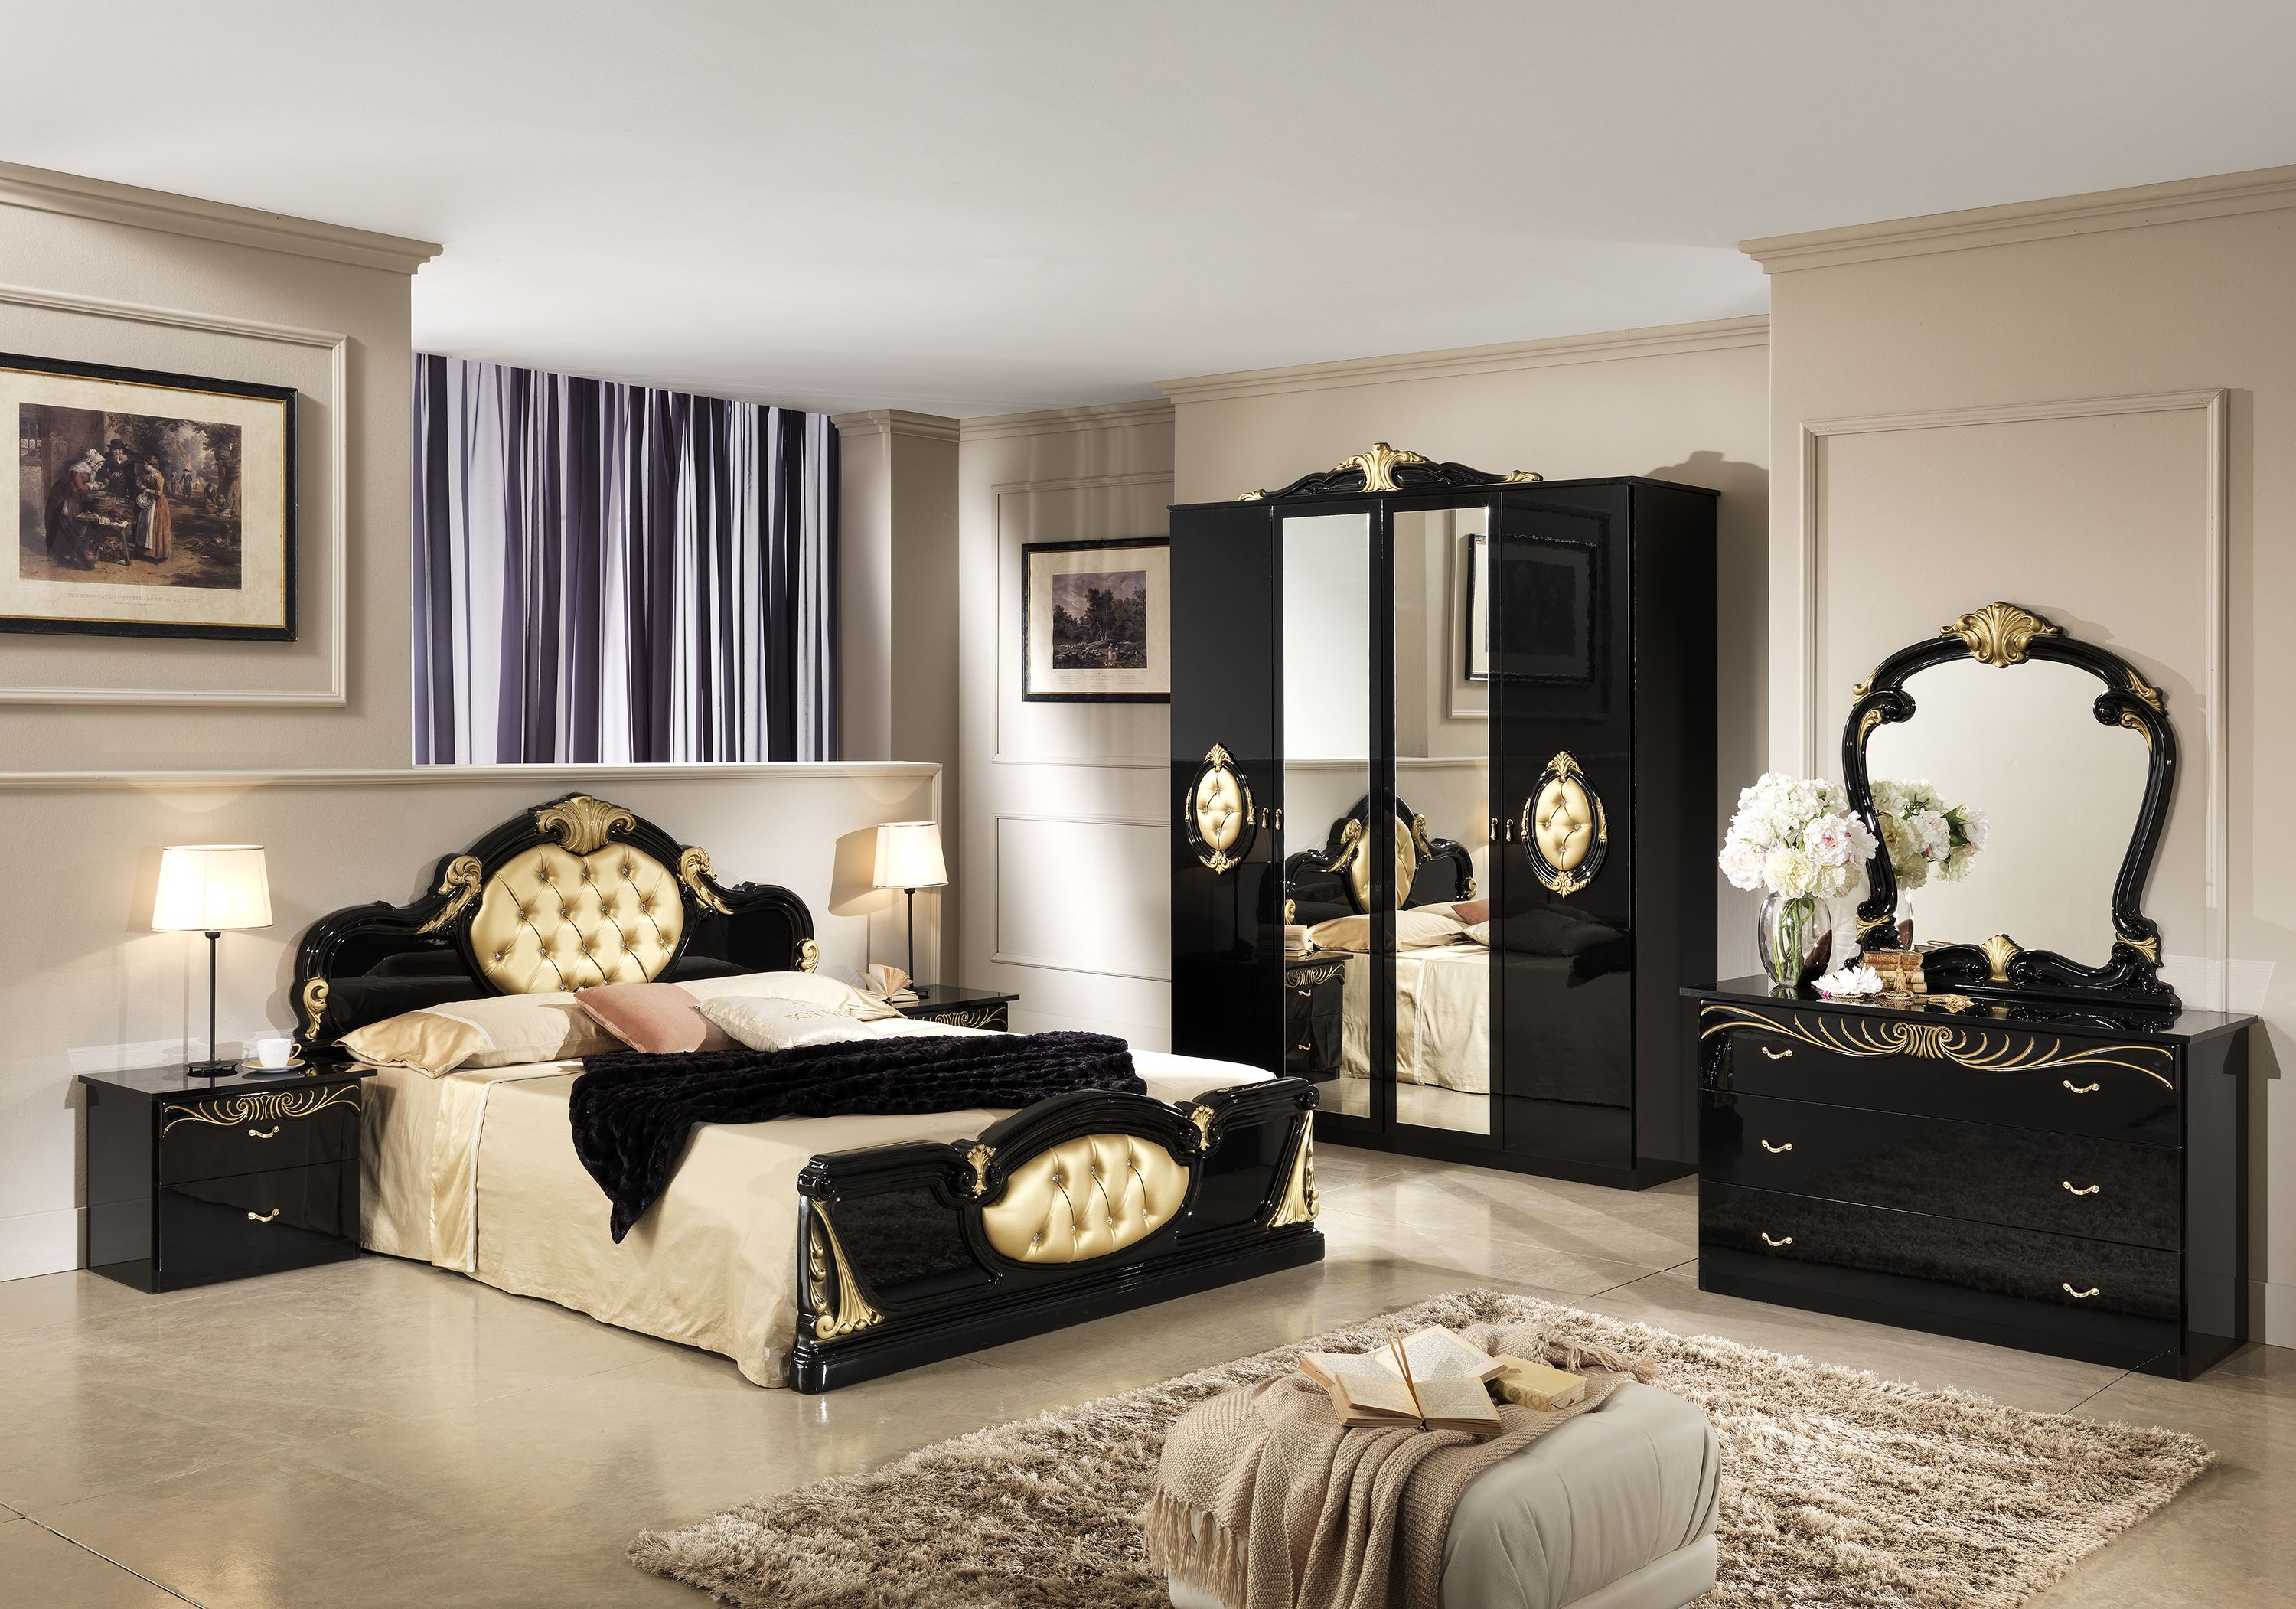 Chambre compl te michelle comprenant armoire 4 portes - Chambres adultes completes ...